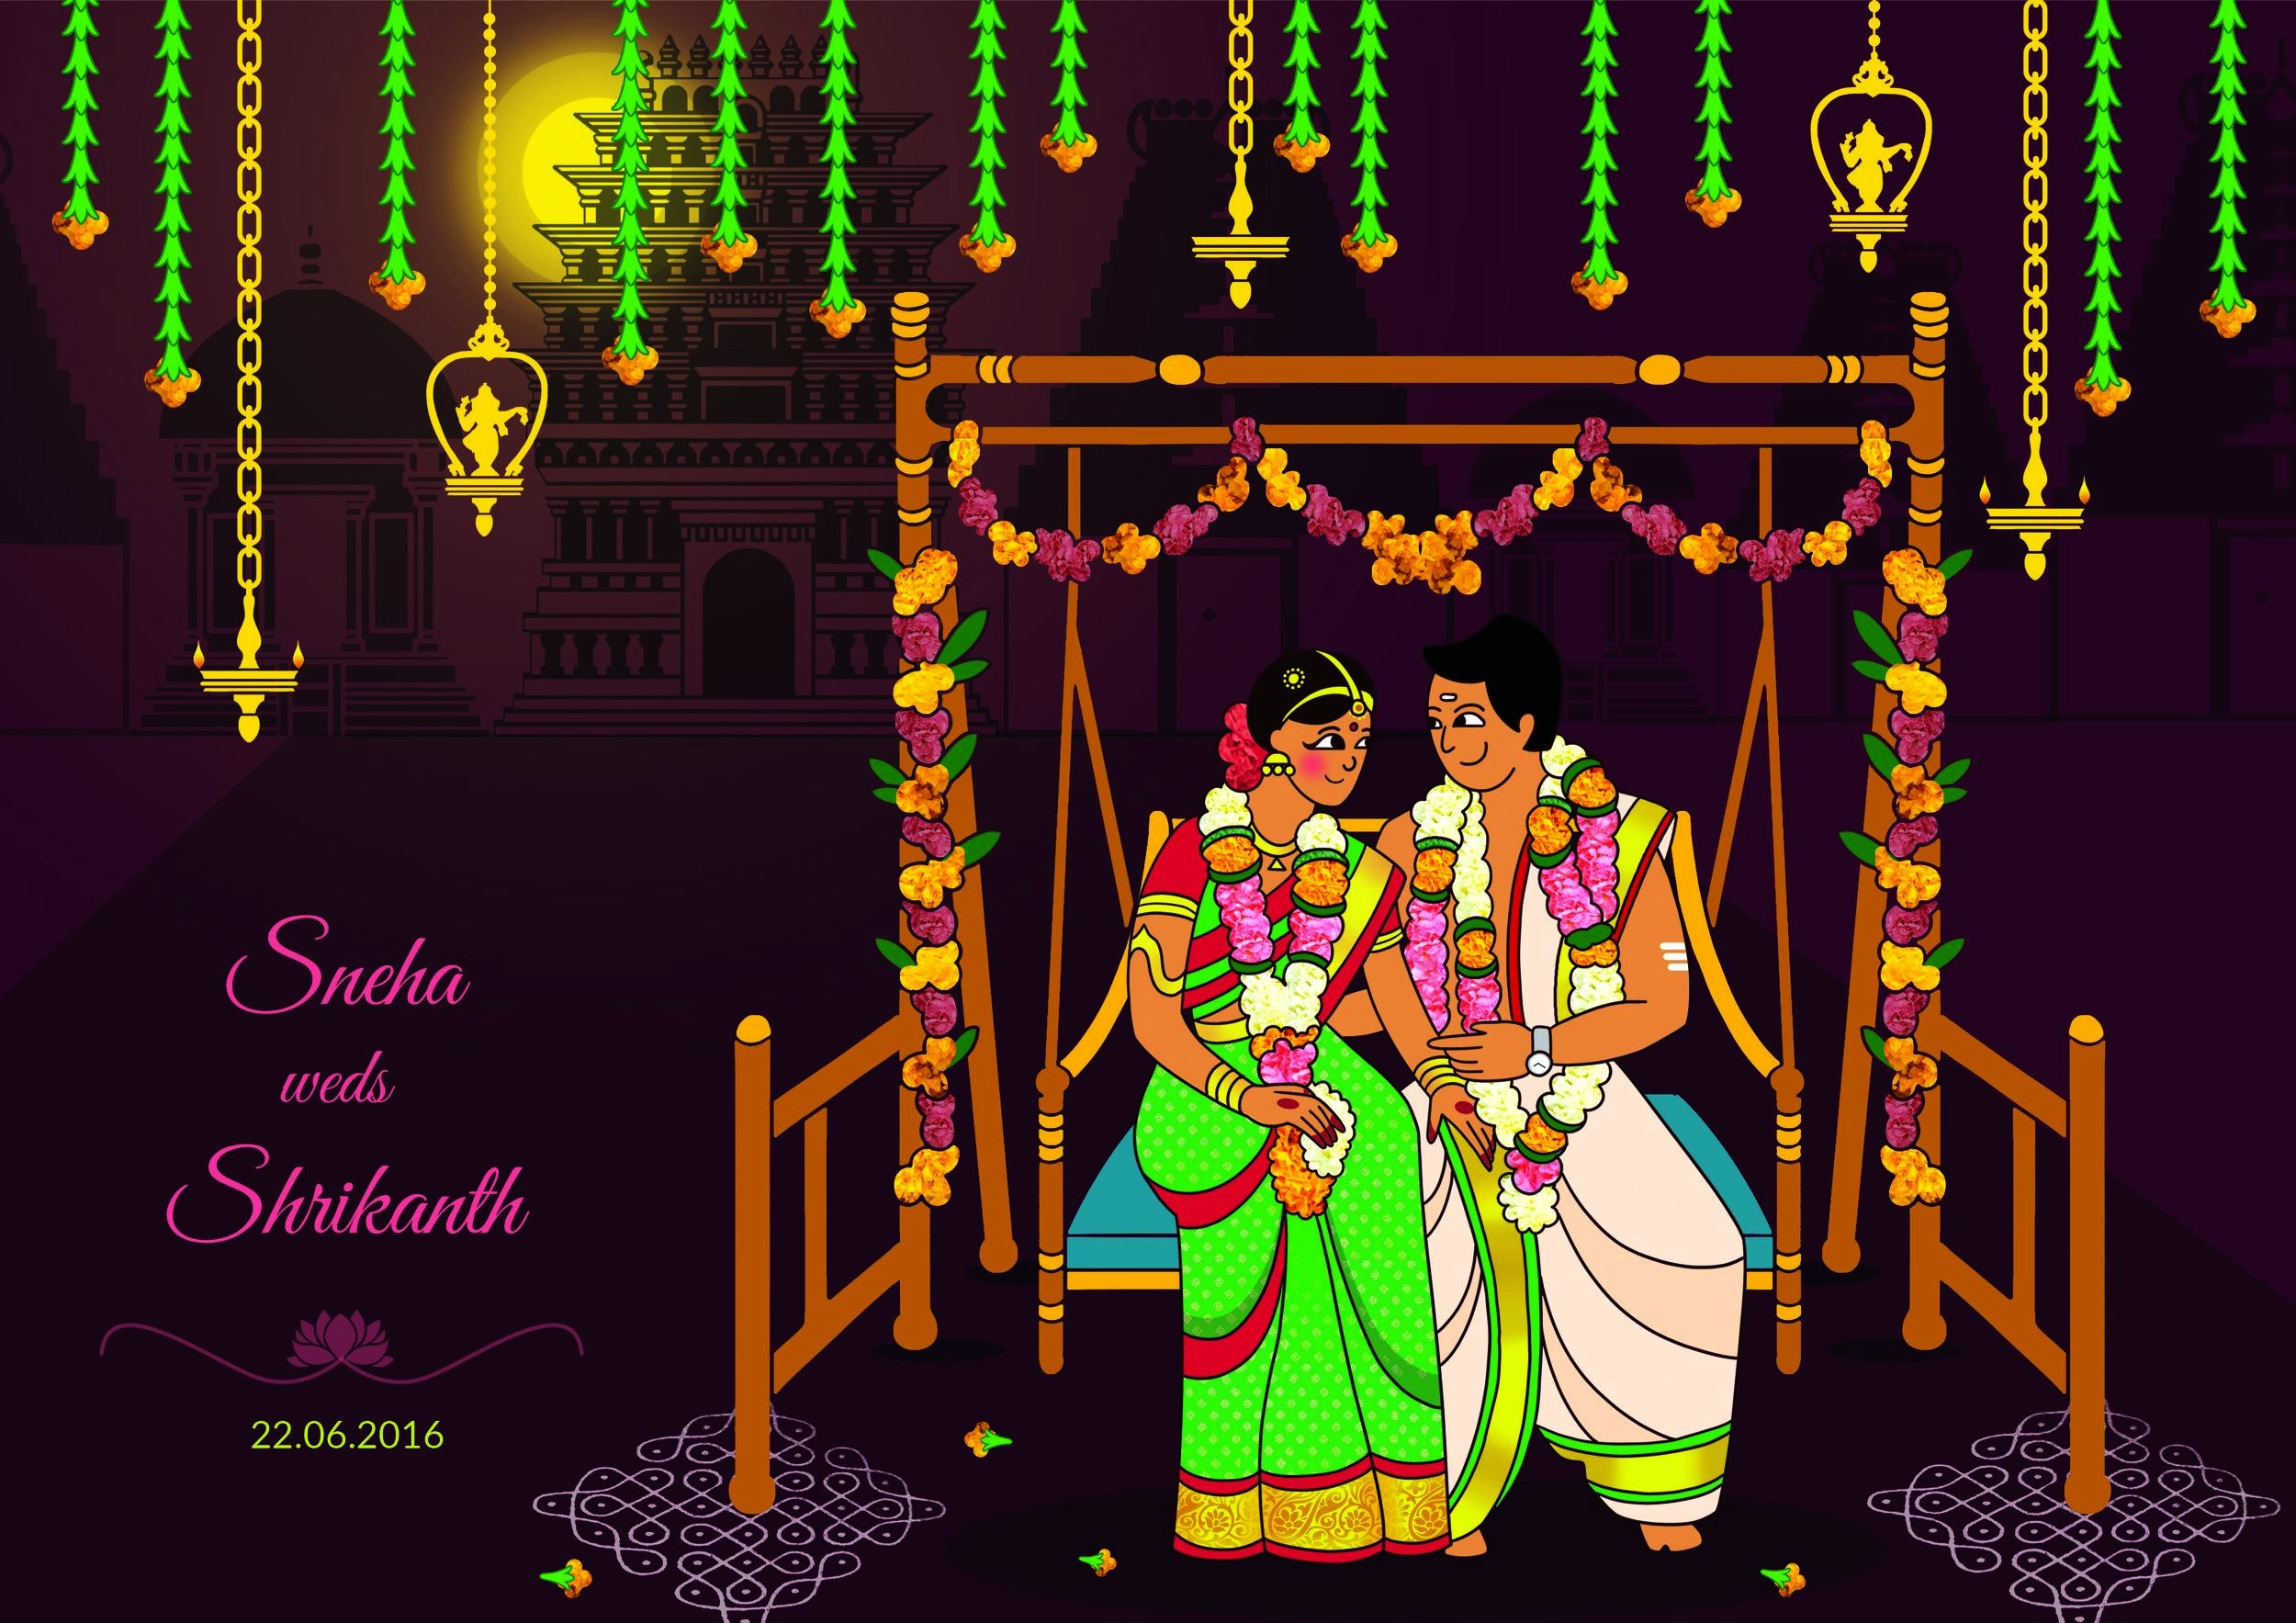 Wedding Invitation Sowmya Iyer